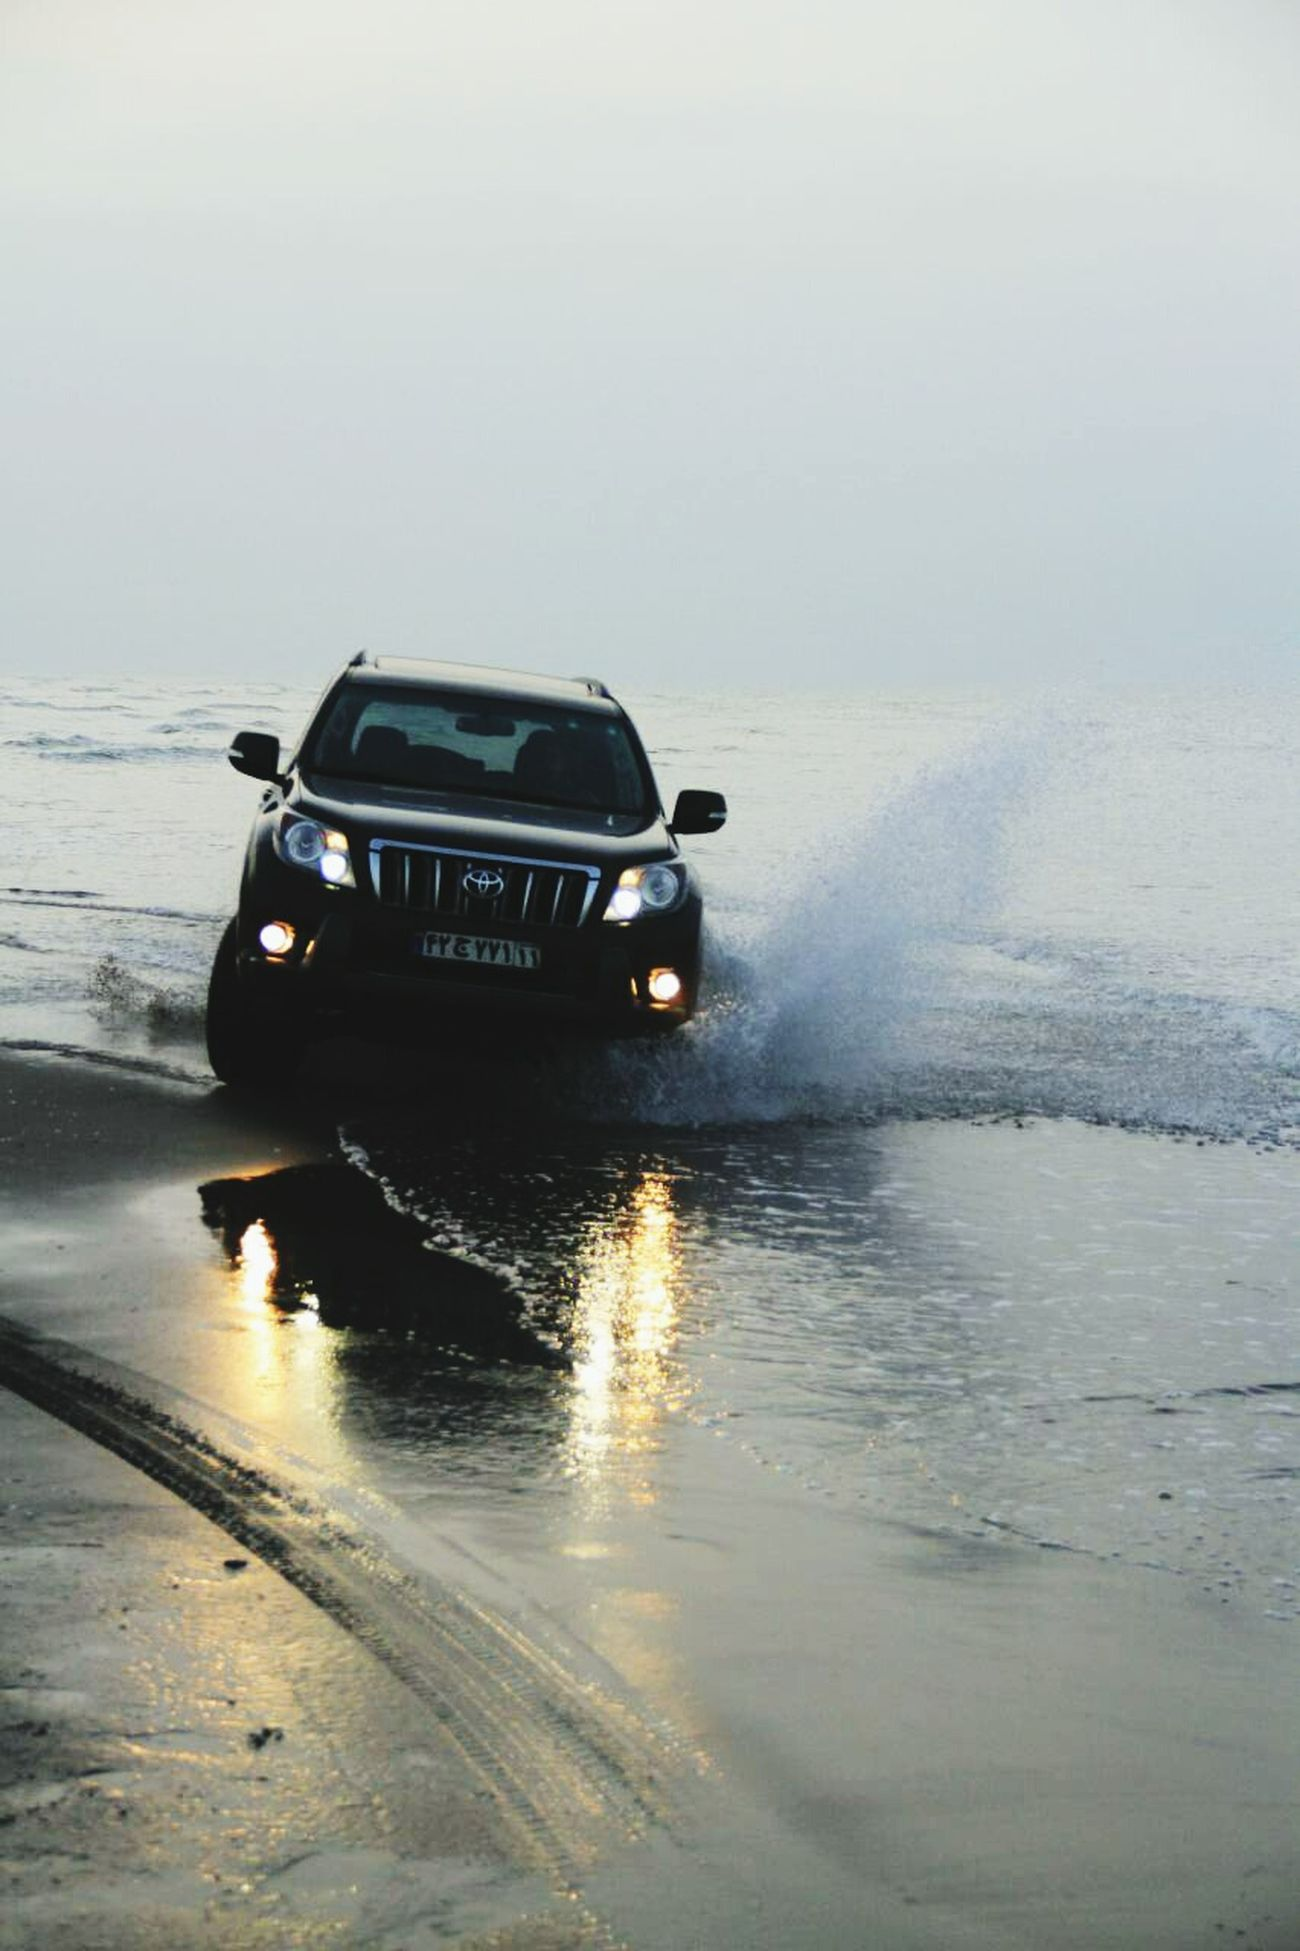 I,Am Crazy Toyota Landcruiser Khezer Shahr Sea Beach Off Road